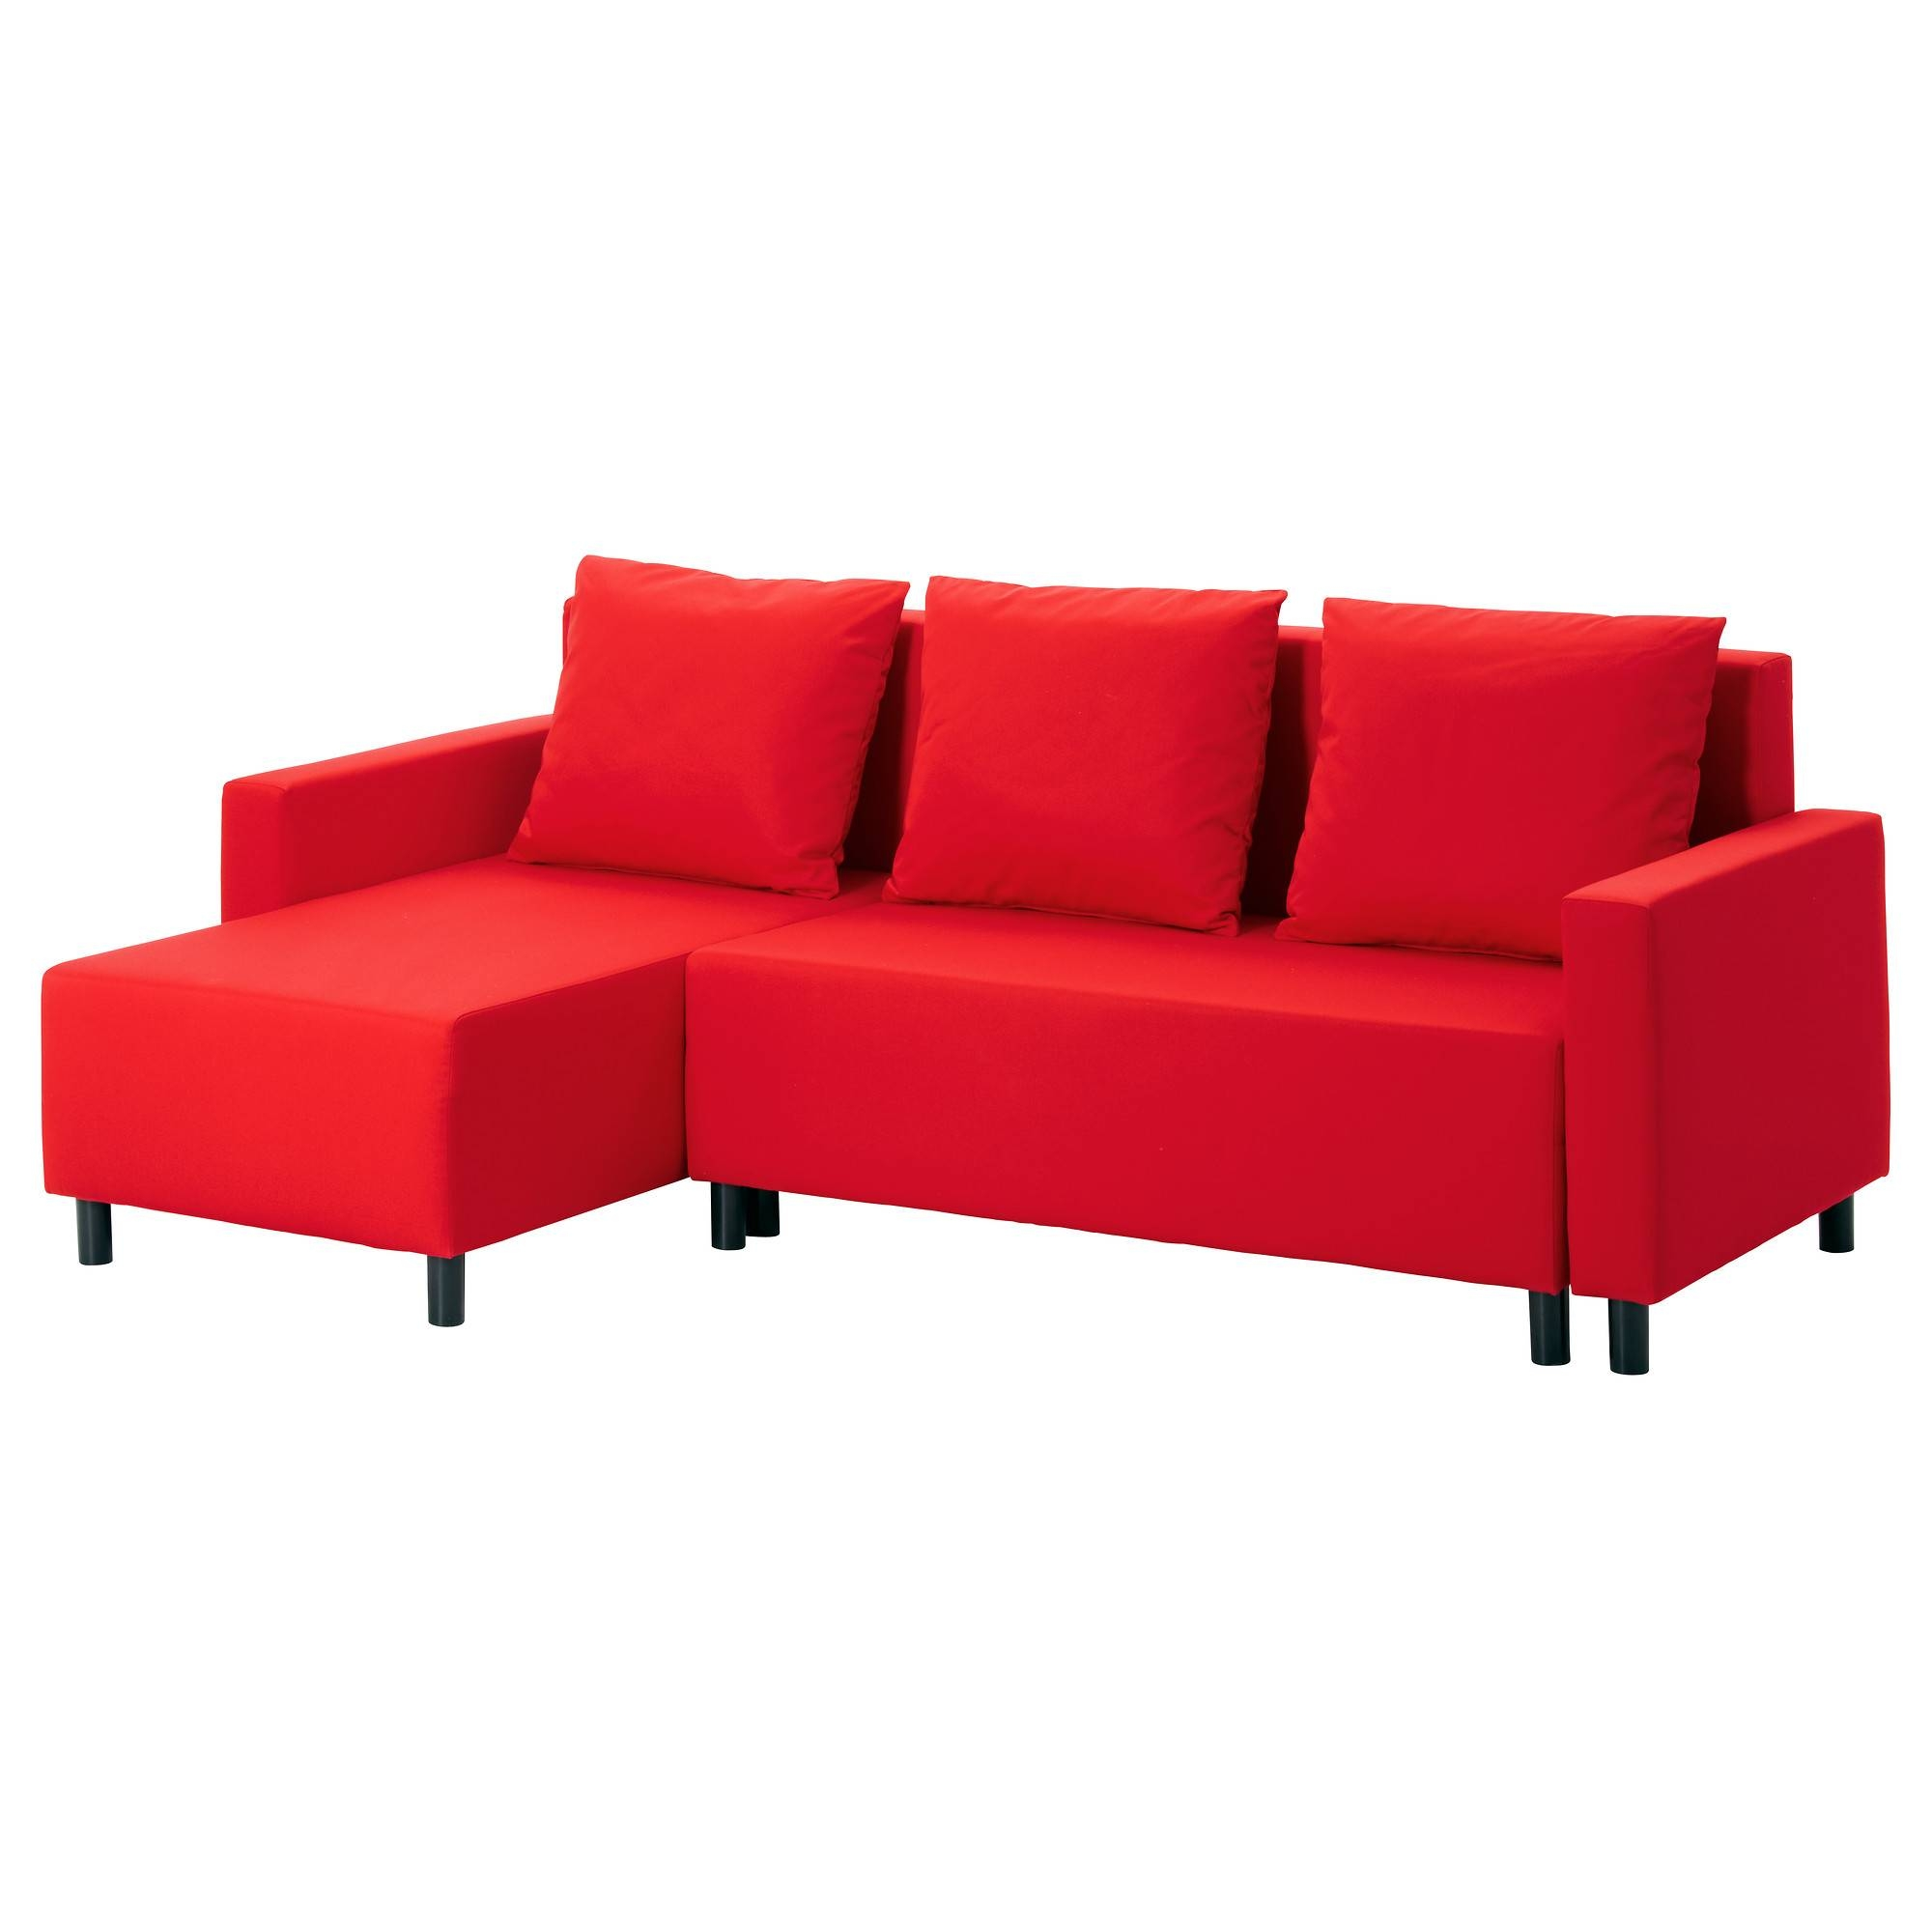 Lugnvik Sofa Bed With Chaise Longue Tallåsen Red - Ikea throughout Ikea Chaise Lounge Sofa (Image 23 of 30)